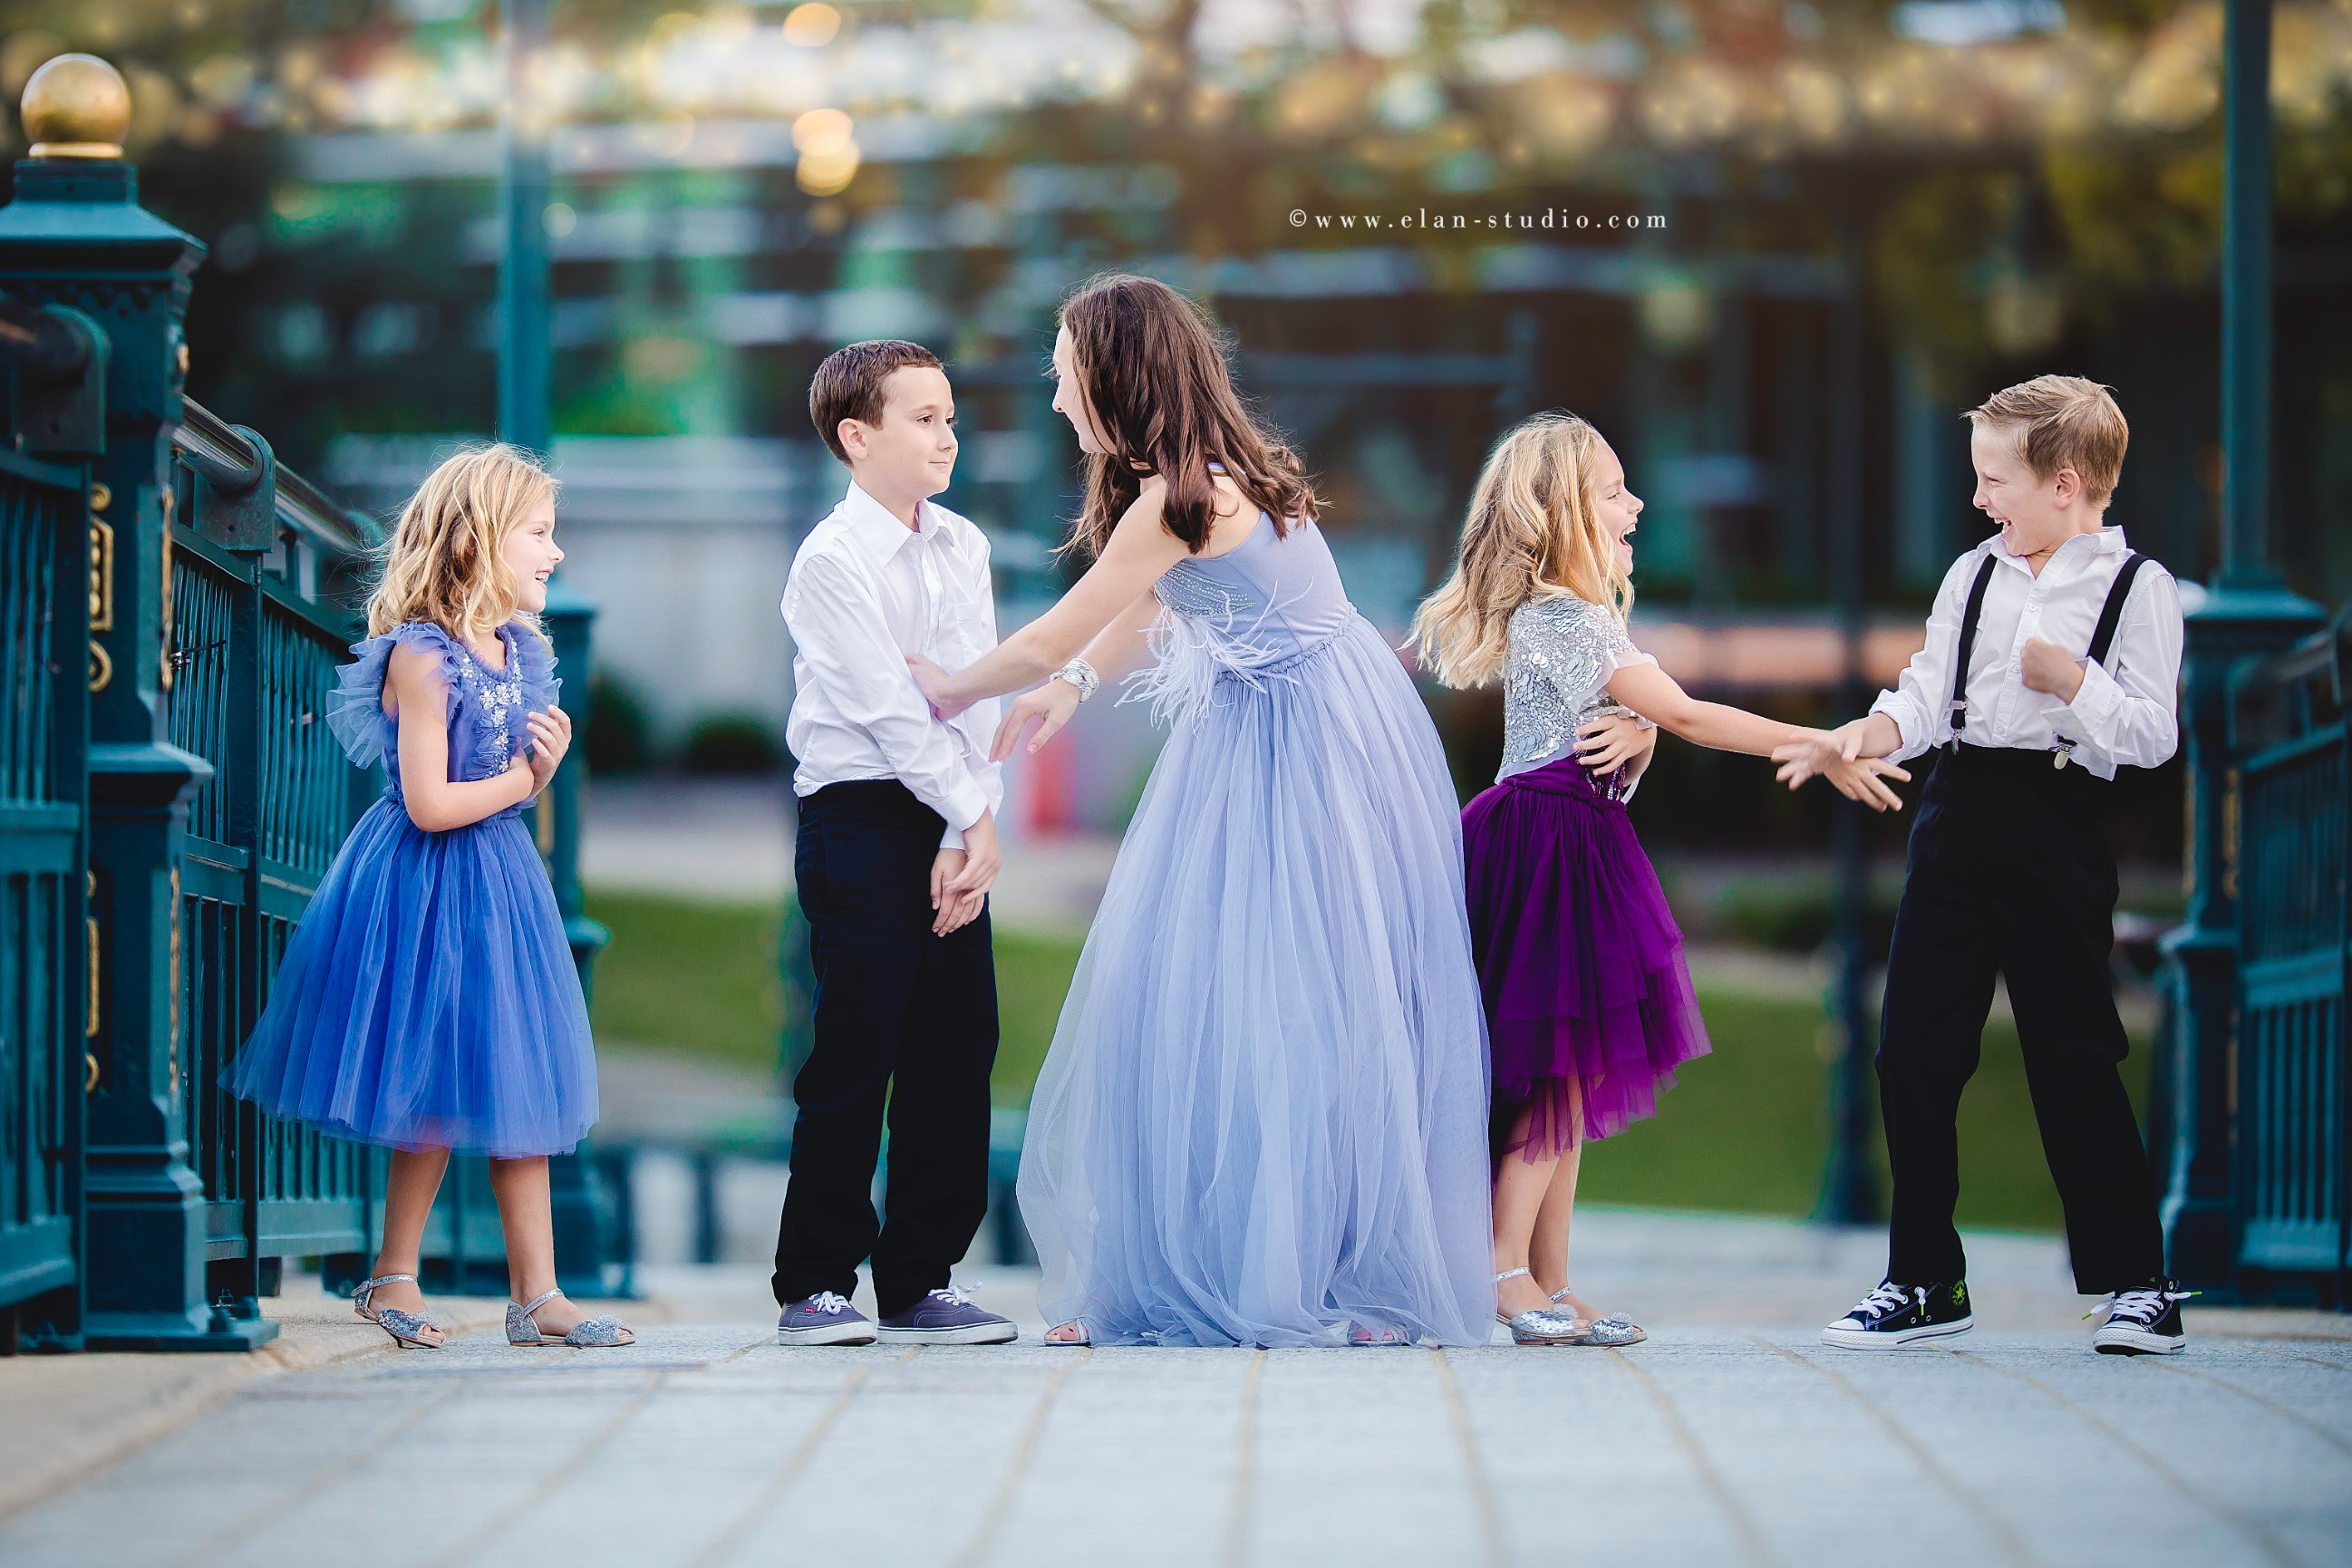 five siblings in formalwear at dusk